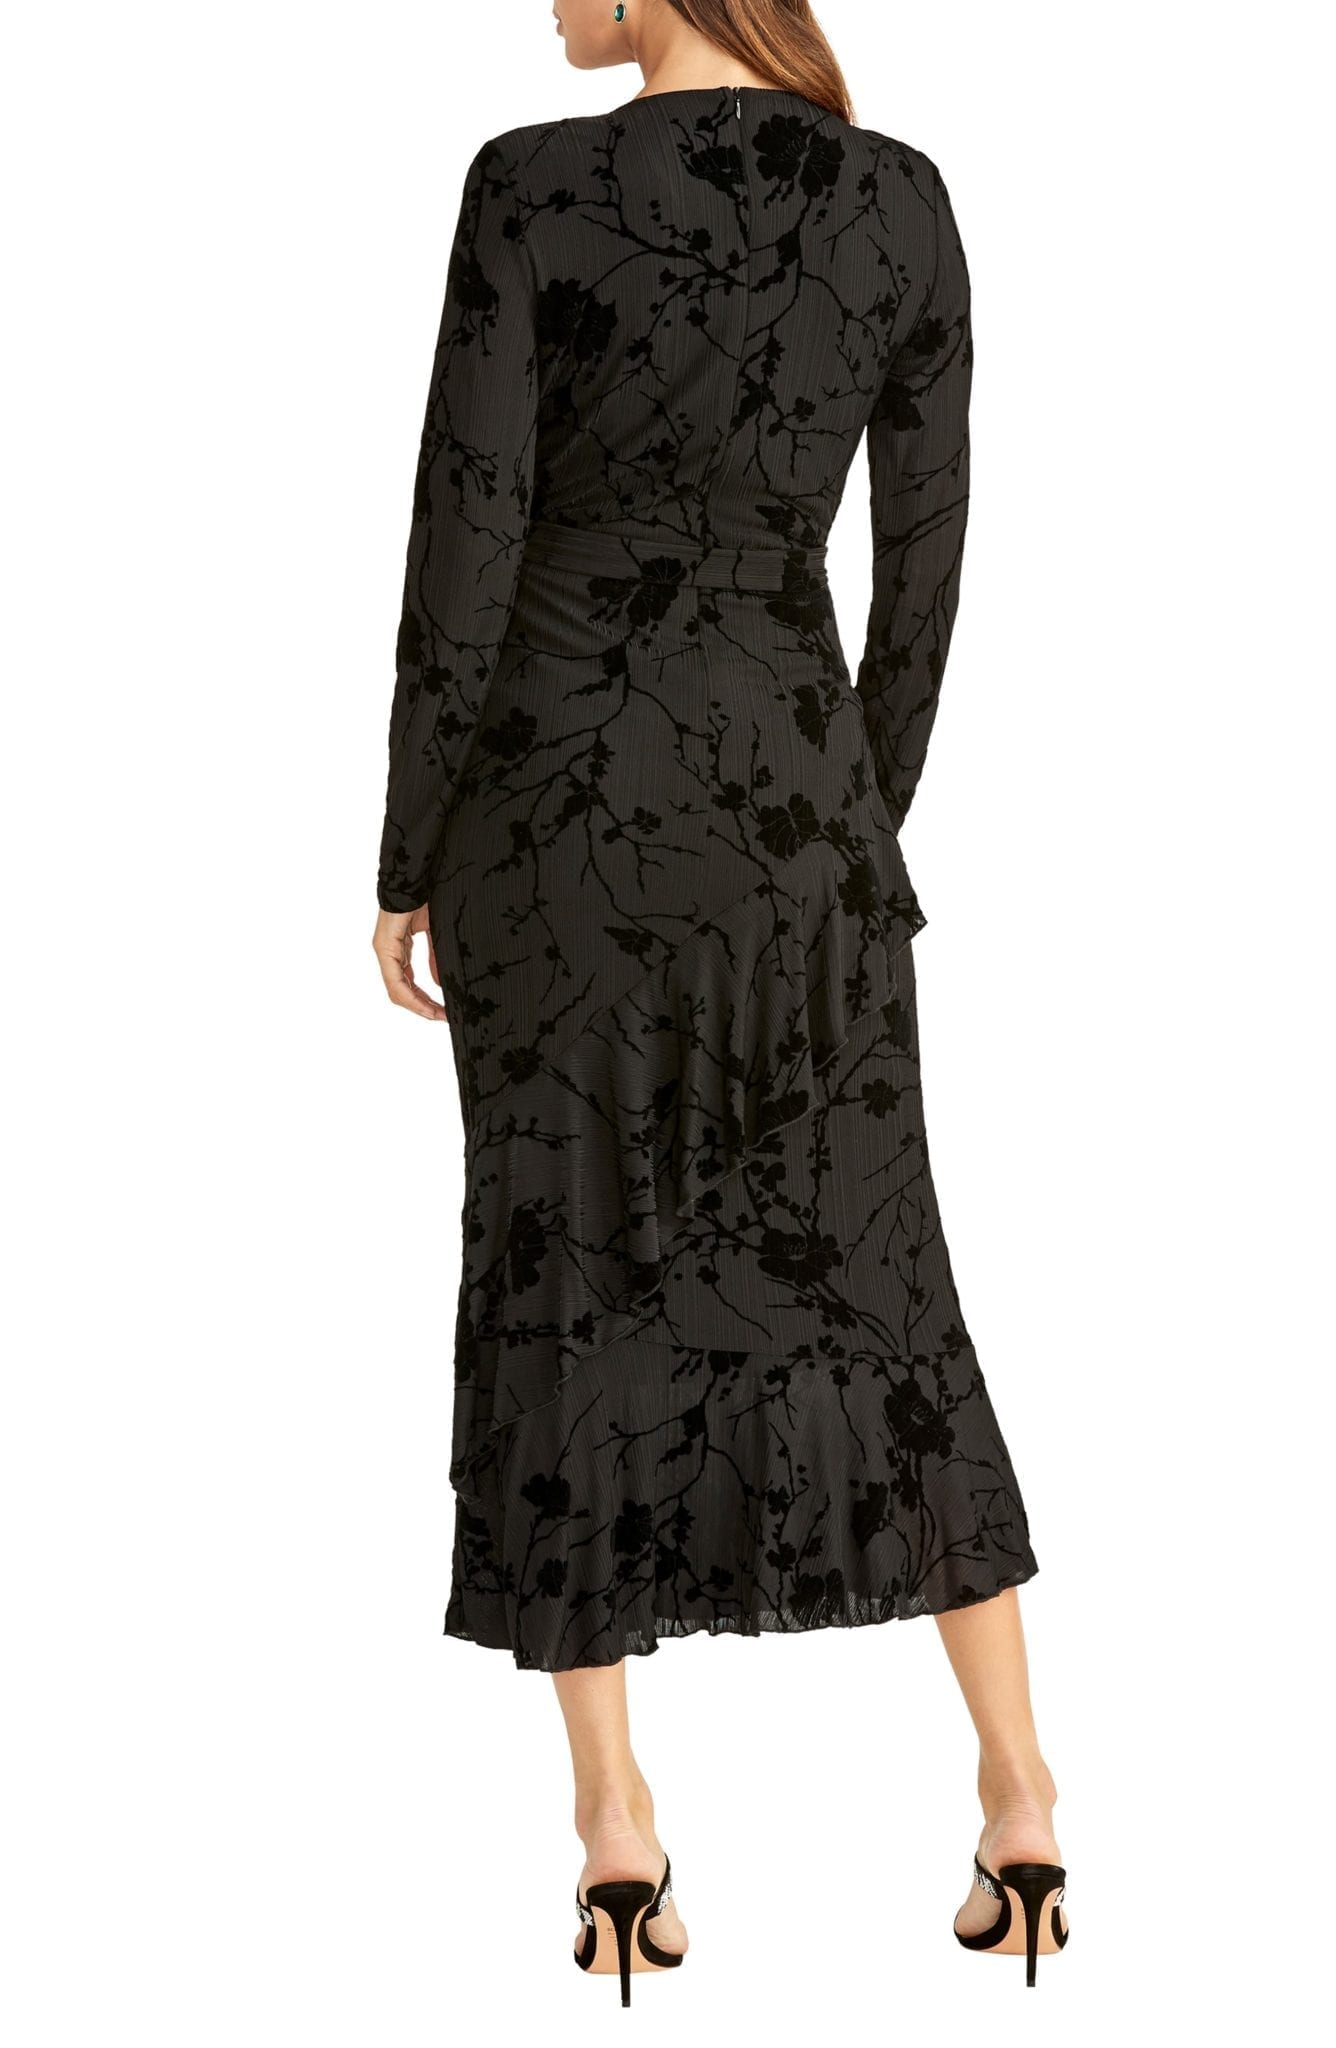 RACHEL RACHEL ROY Flocked Velvet Long Sleeve Faux Wrap Dress